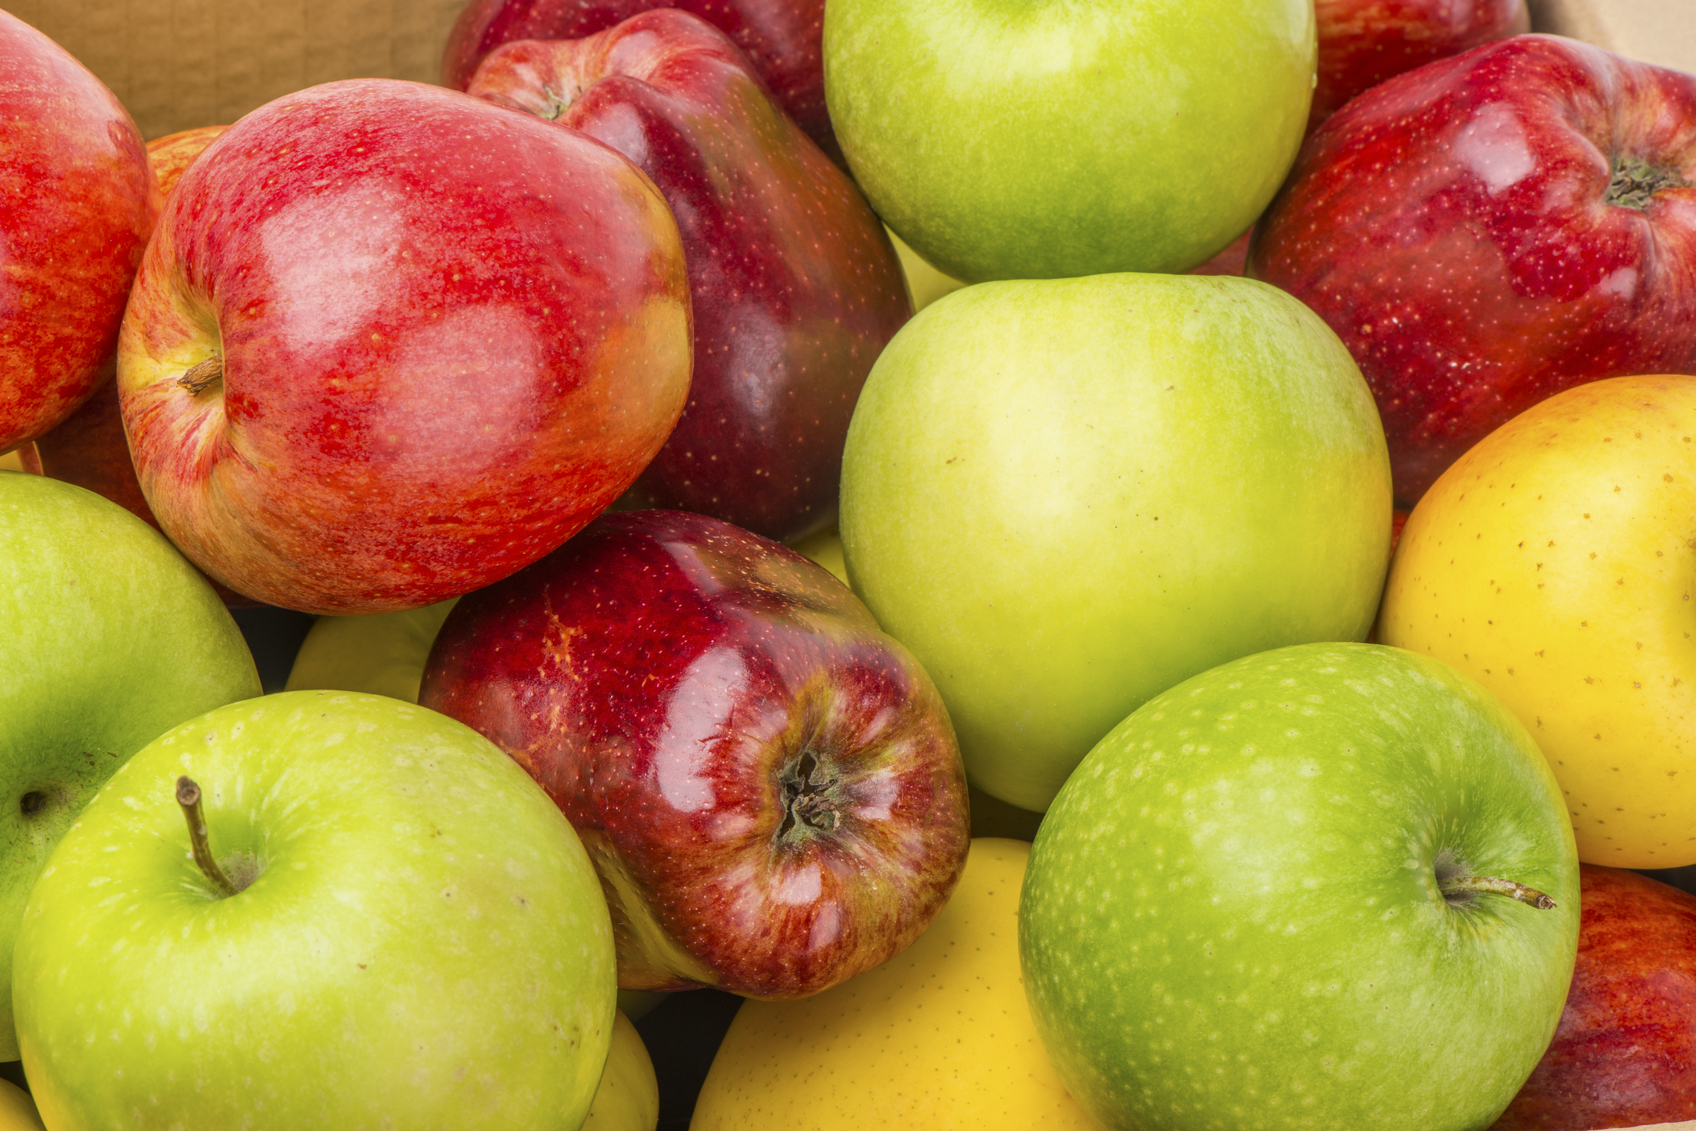 An Apple a Day Keeps the Doctor Away, but are Apples Good for Diabetics?